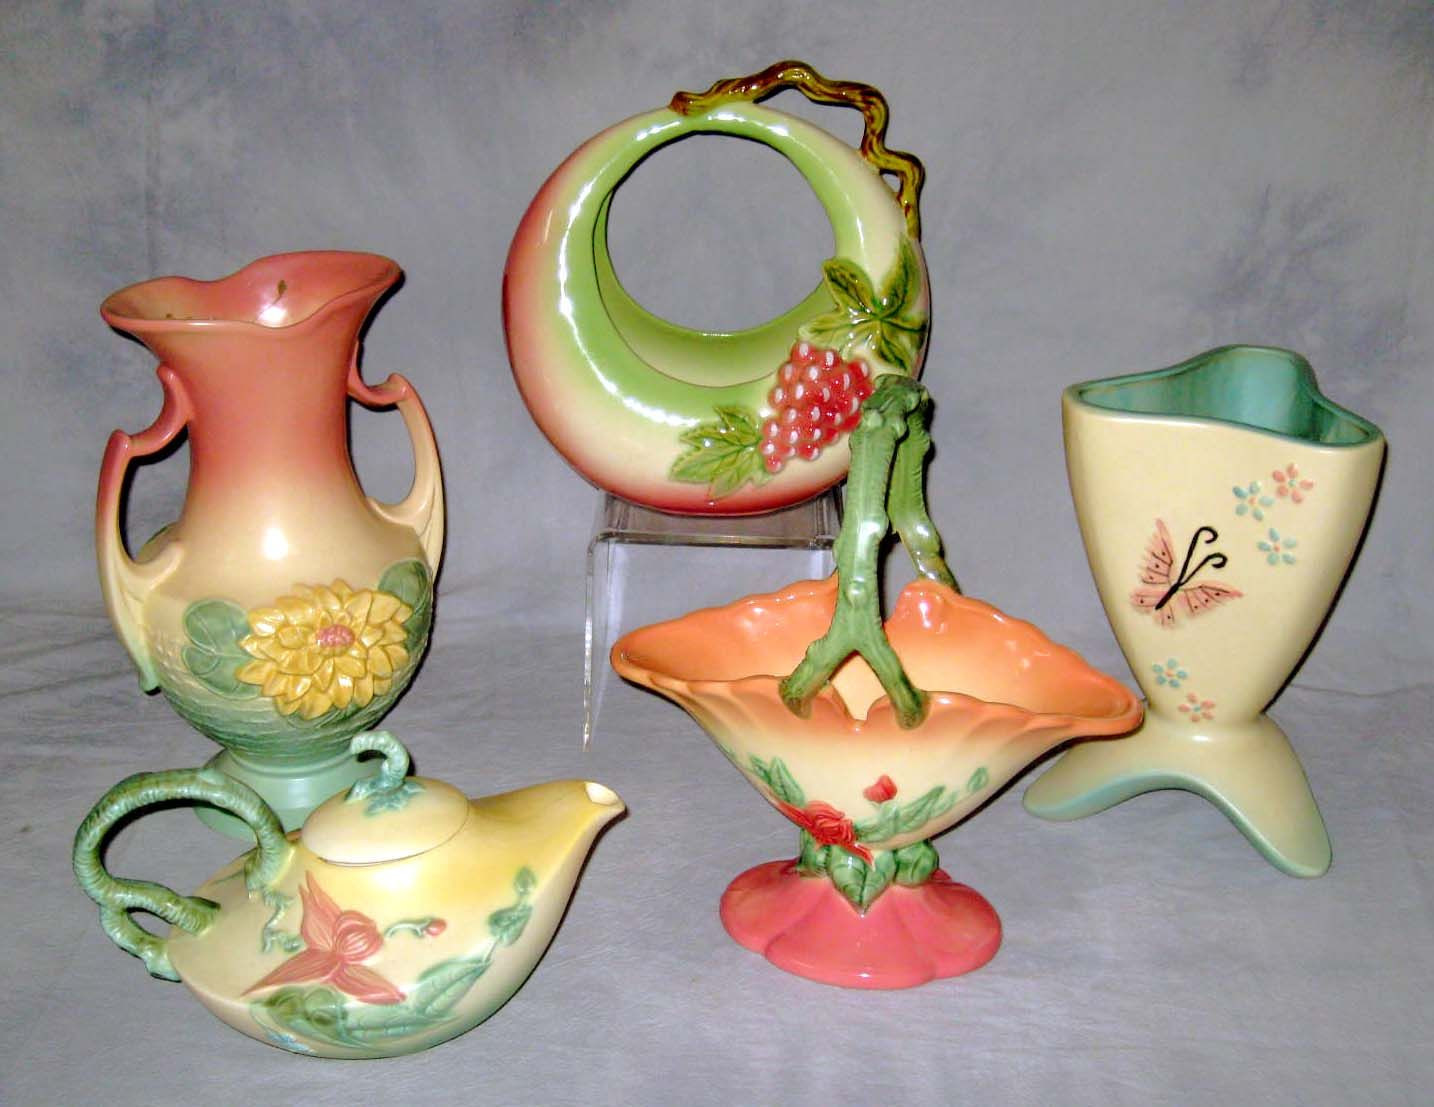 hull art pottery magnolia vase of hull art pottery hull pottery fenton ware siss collection within hull art pottery